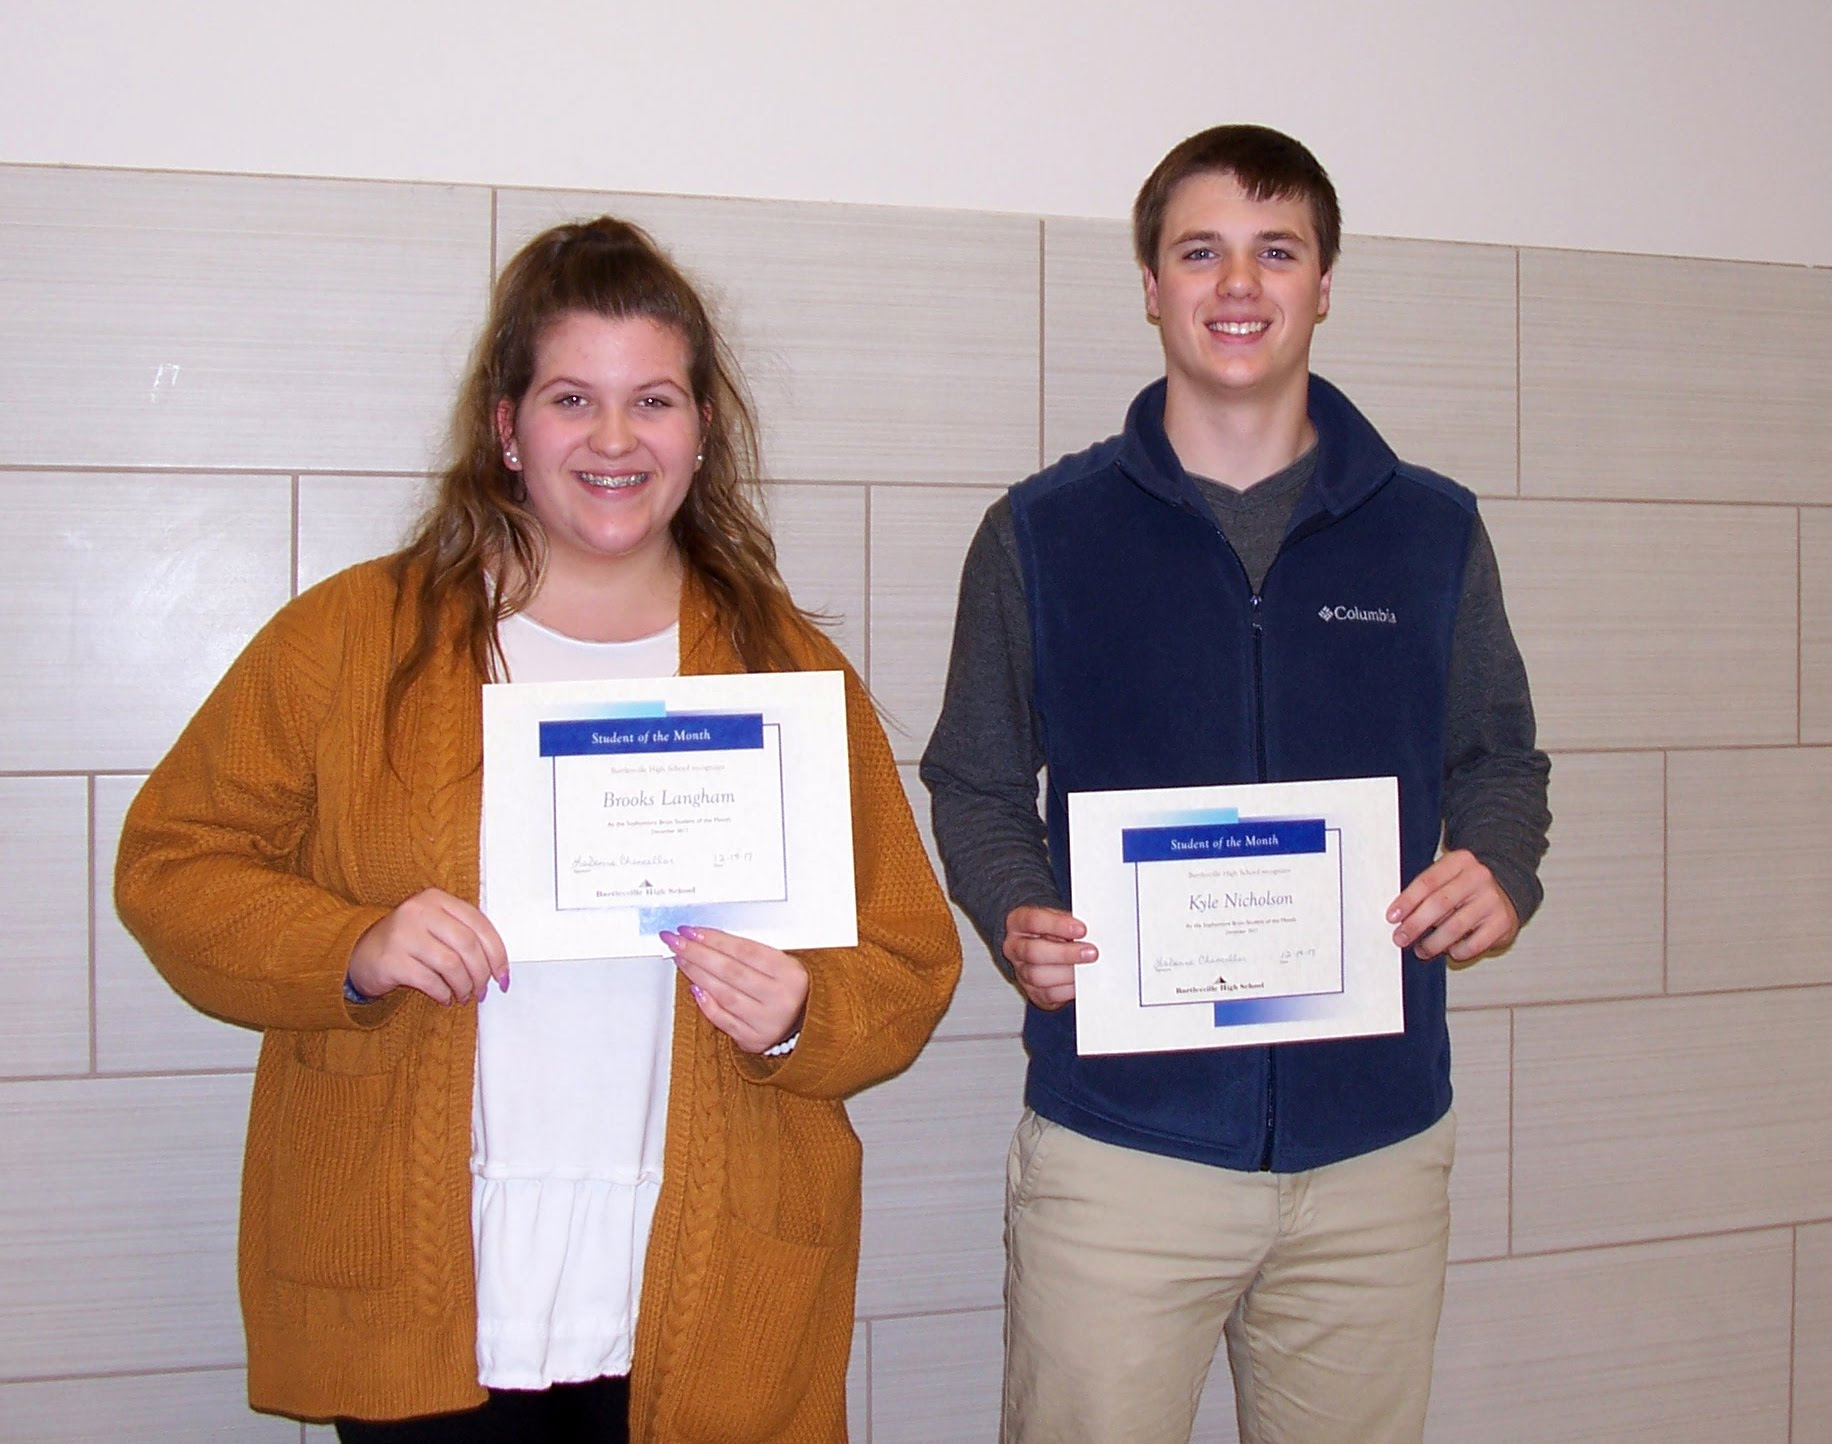 Sophomores Brooks Langham and Kyle Nicholson - Bruin Group Students of the Month for December 2017